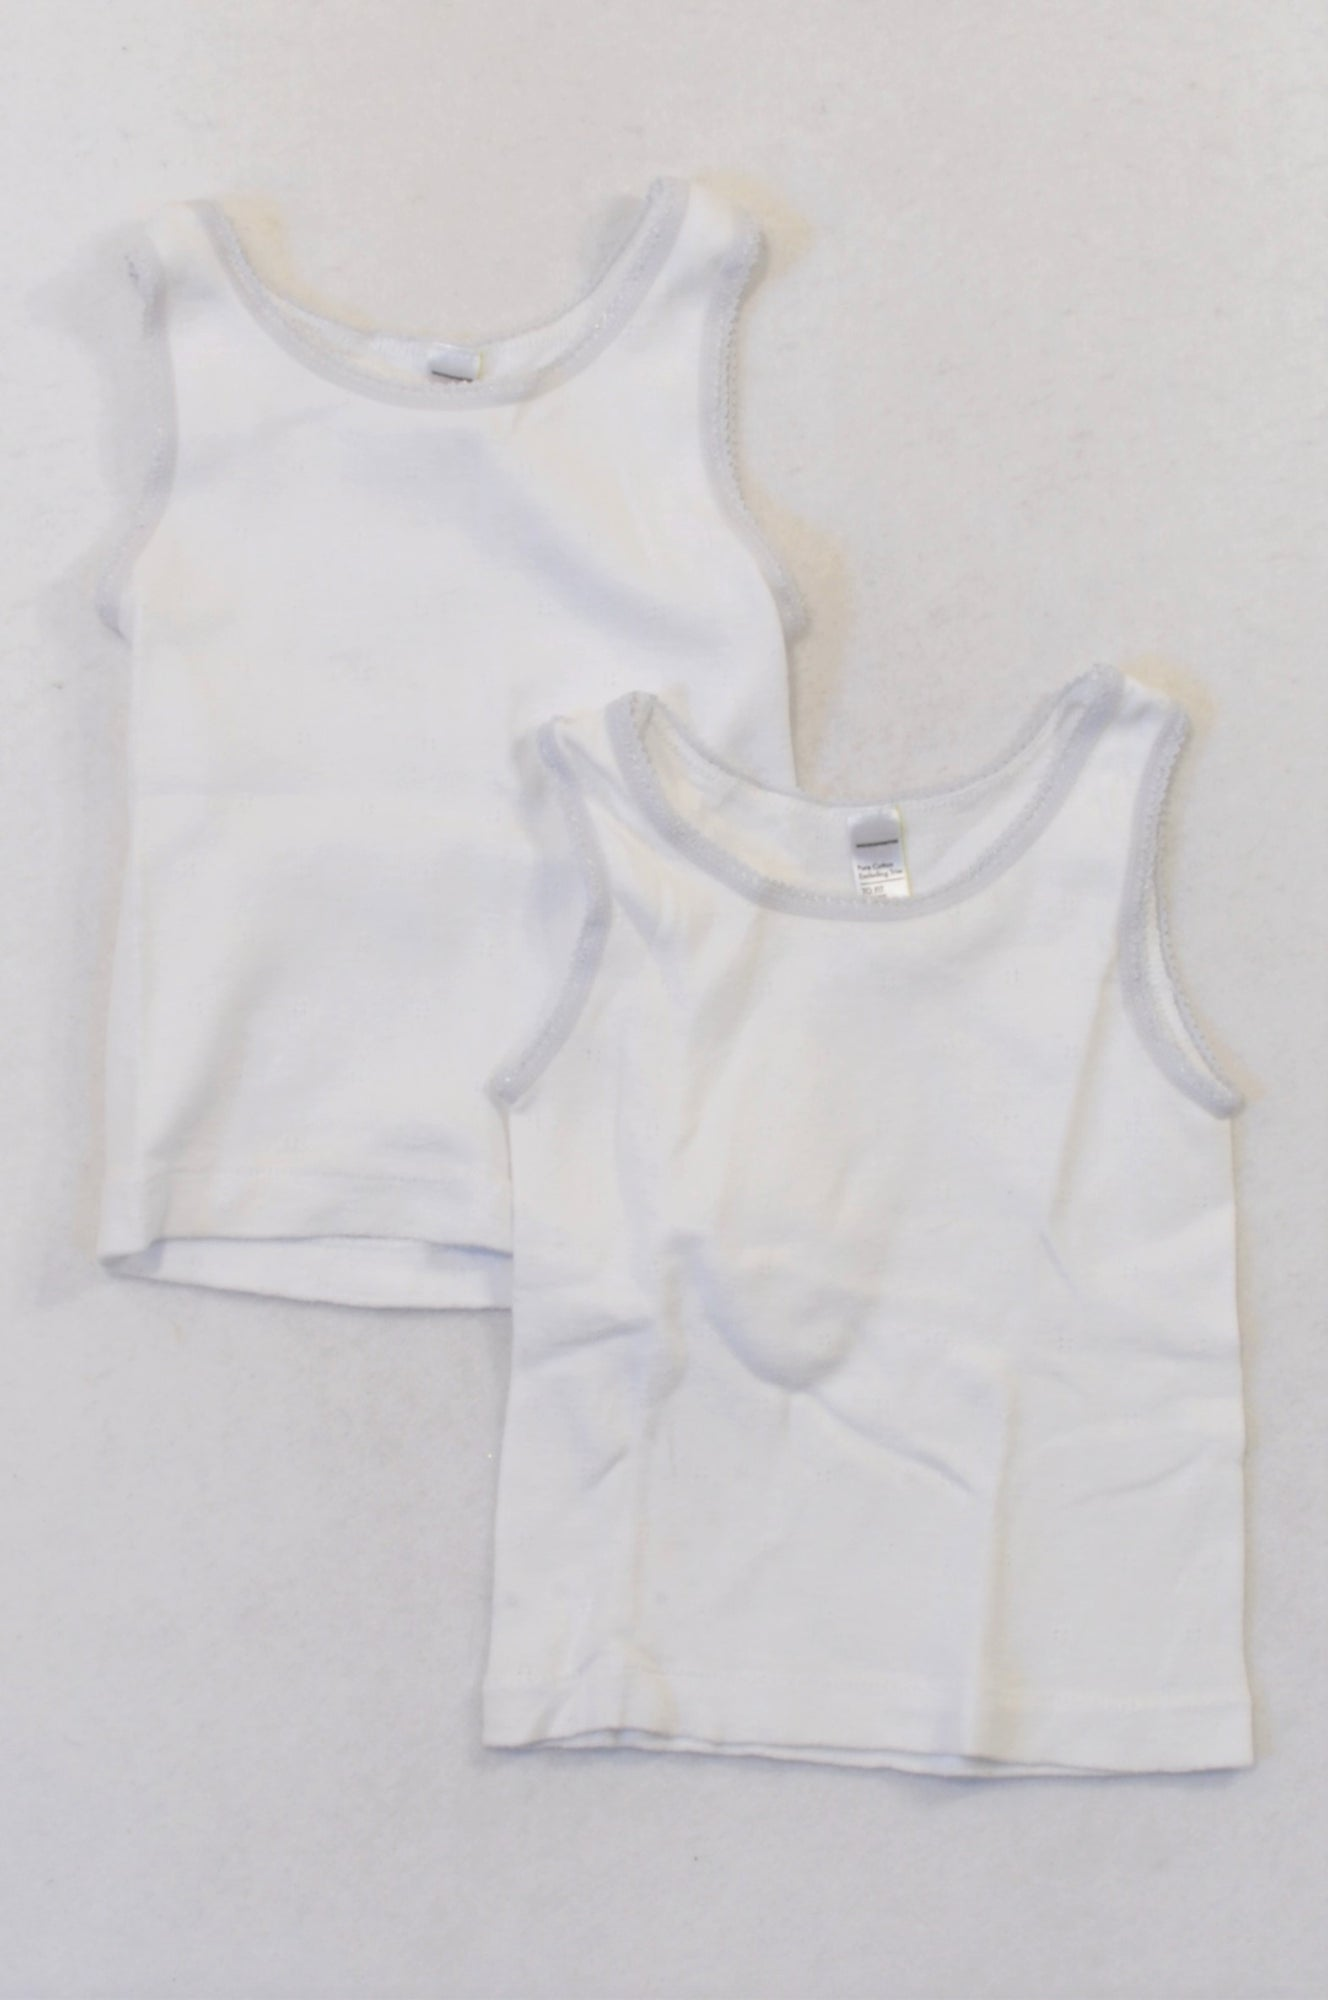 0e3206f5888 Woolworths 2 Pack Lace Trim Tank Vest Tops Girls 2-3 years